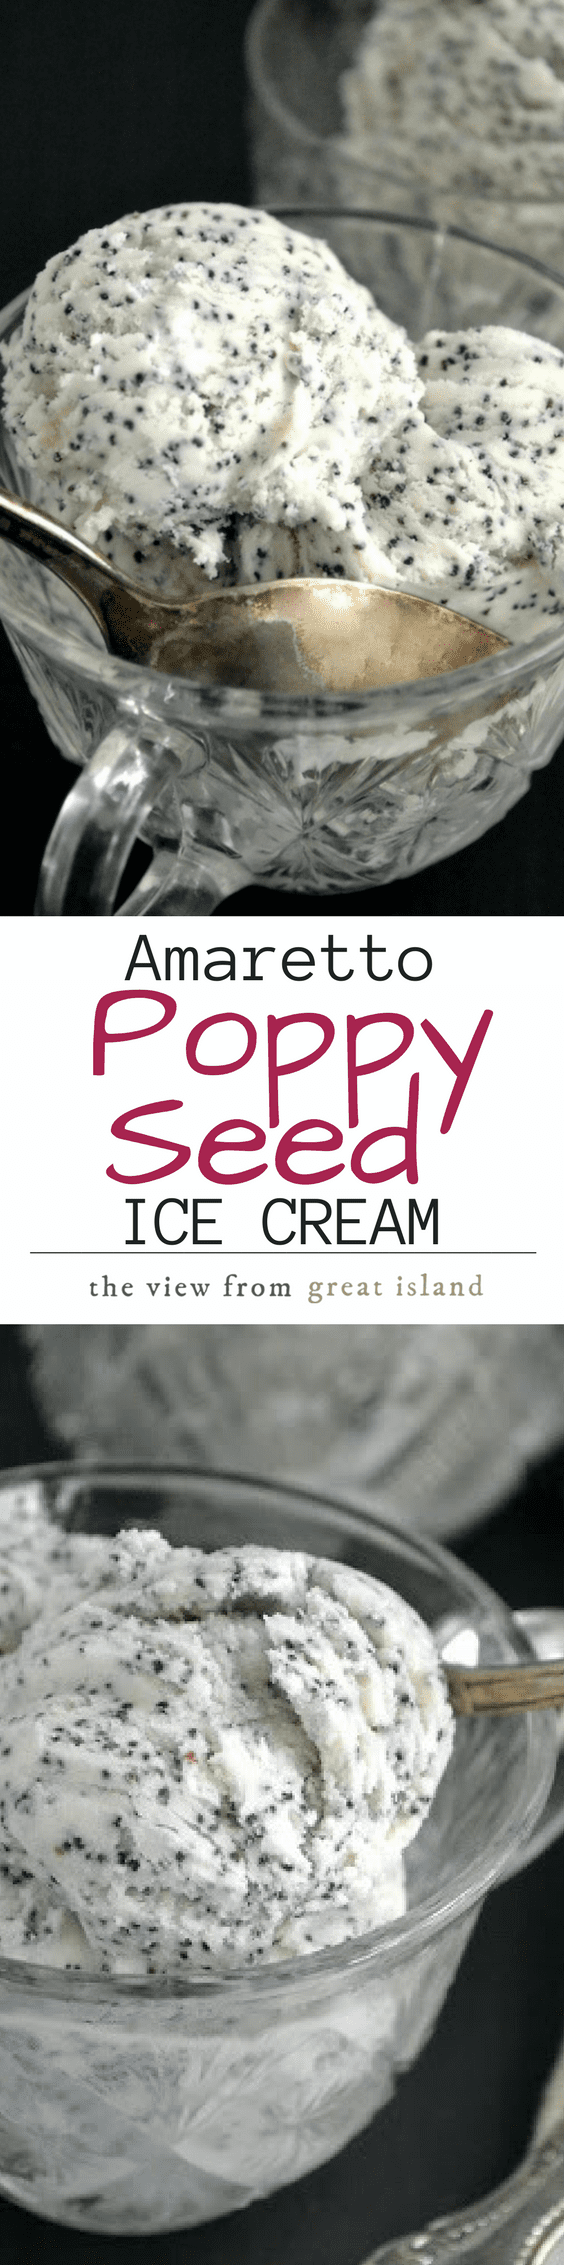 Amaretto Poppy Seed ice Cream pin